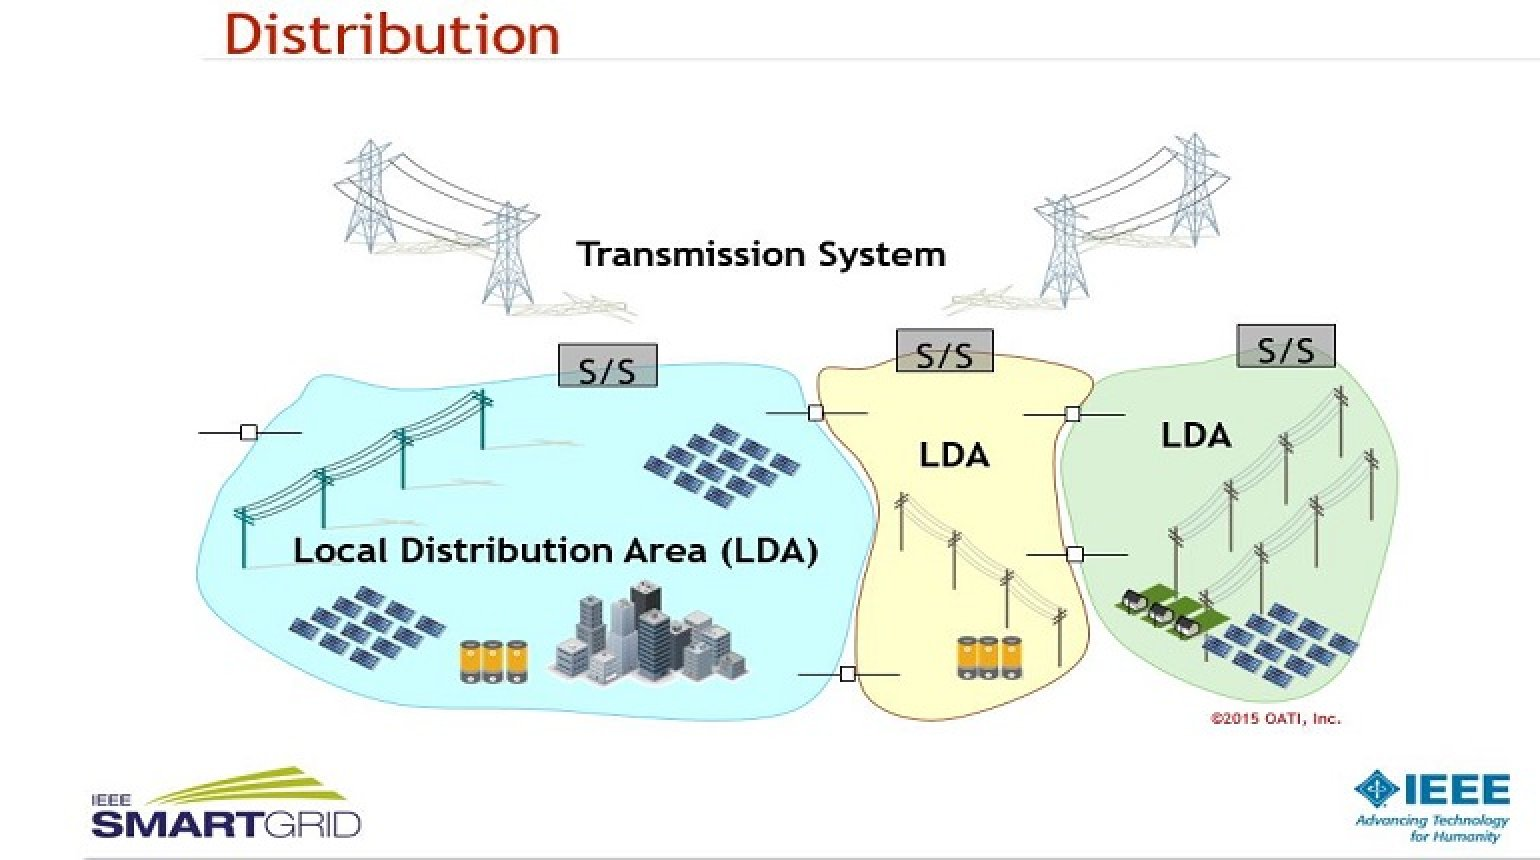 Distributed Energy Resources and Grid Modernization with Dr. Ali Ipakchi